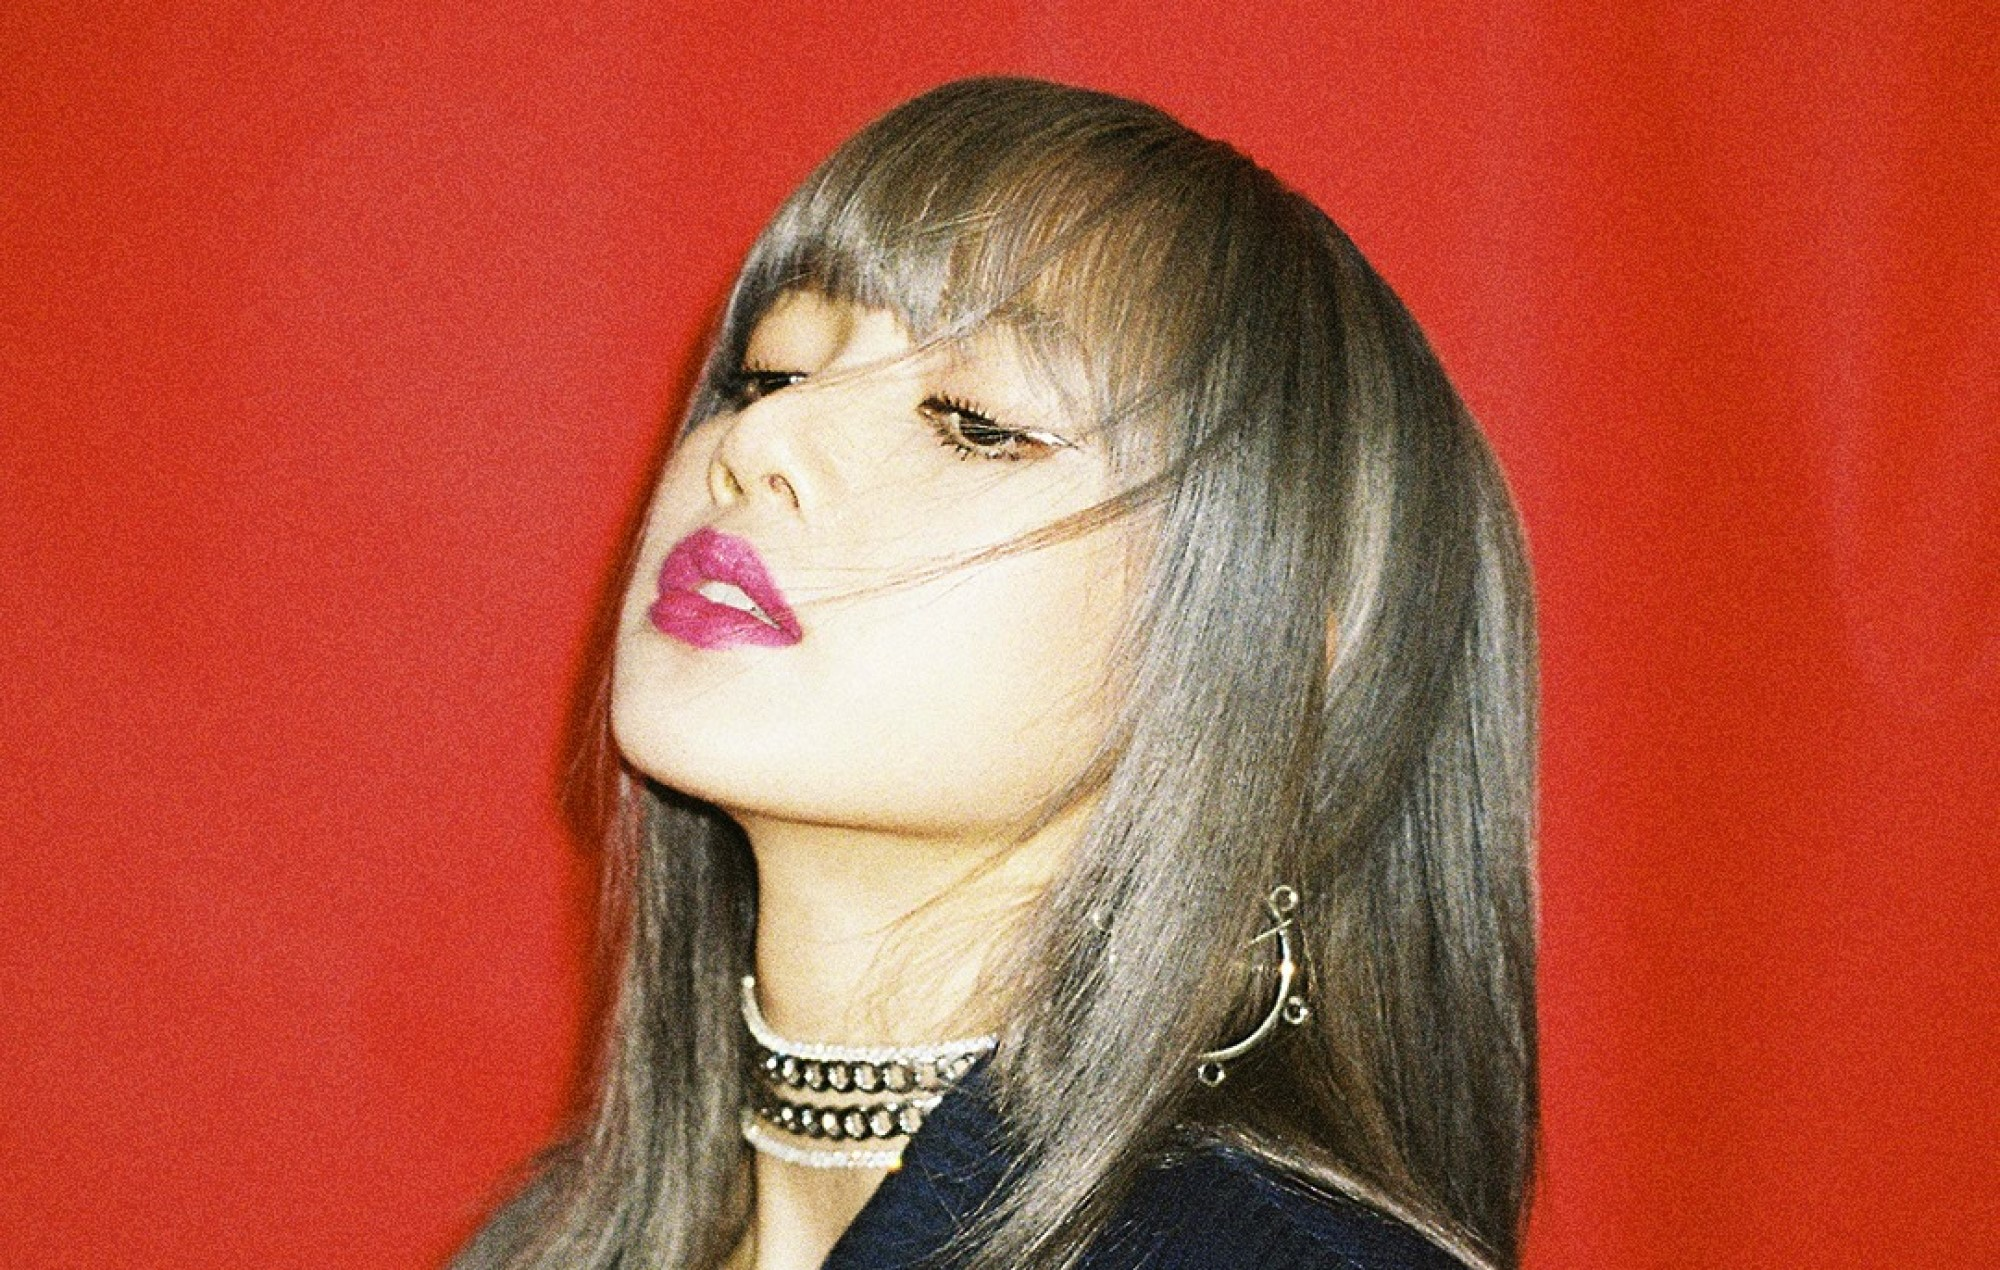 BLACKPINK's Lisa Prepares To Make Her Highly-Anticipated Solo Debut